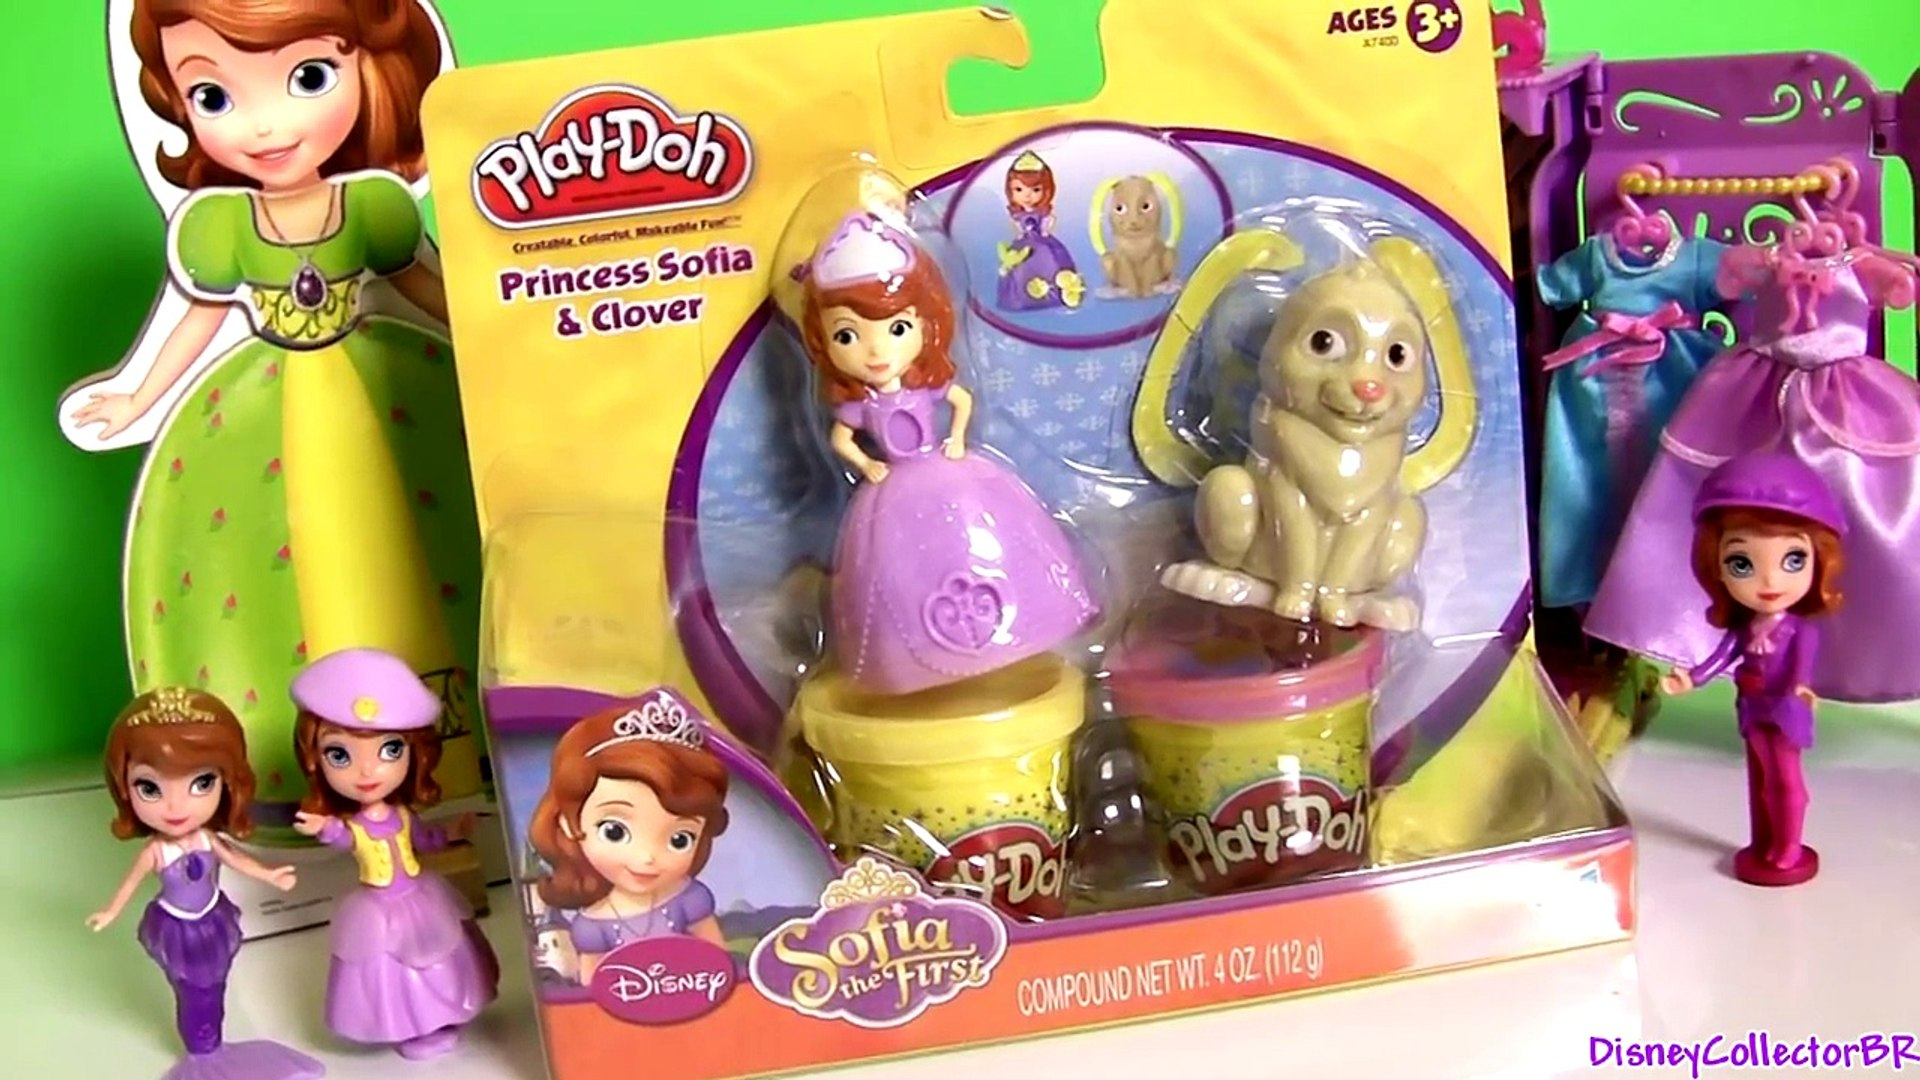 Play Doh Sofia The First Clover The Rabbit Set Disney Princess Sofia Play Dough 소피아먼저 찰흙 놀이